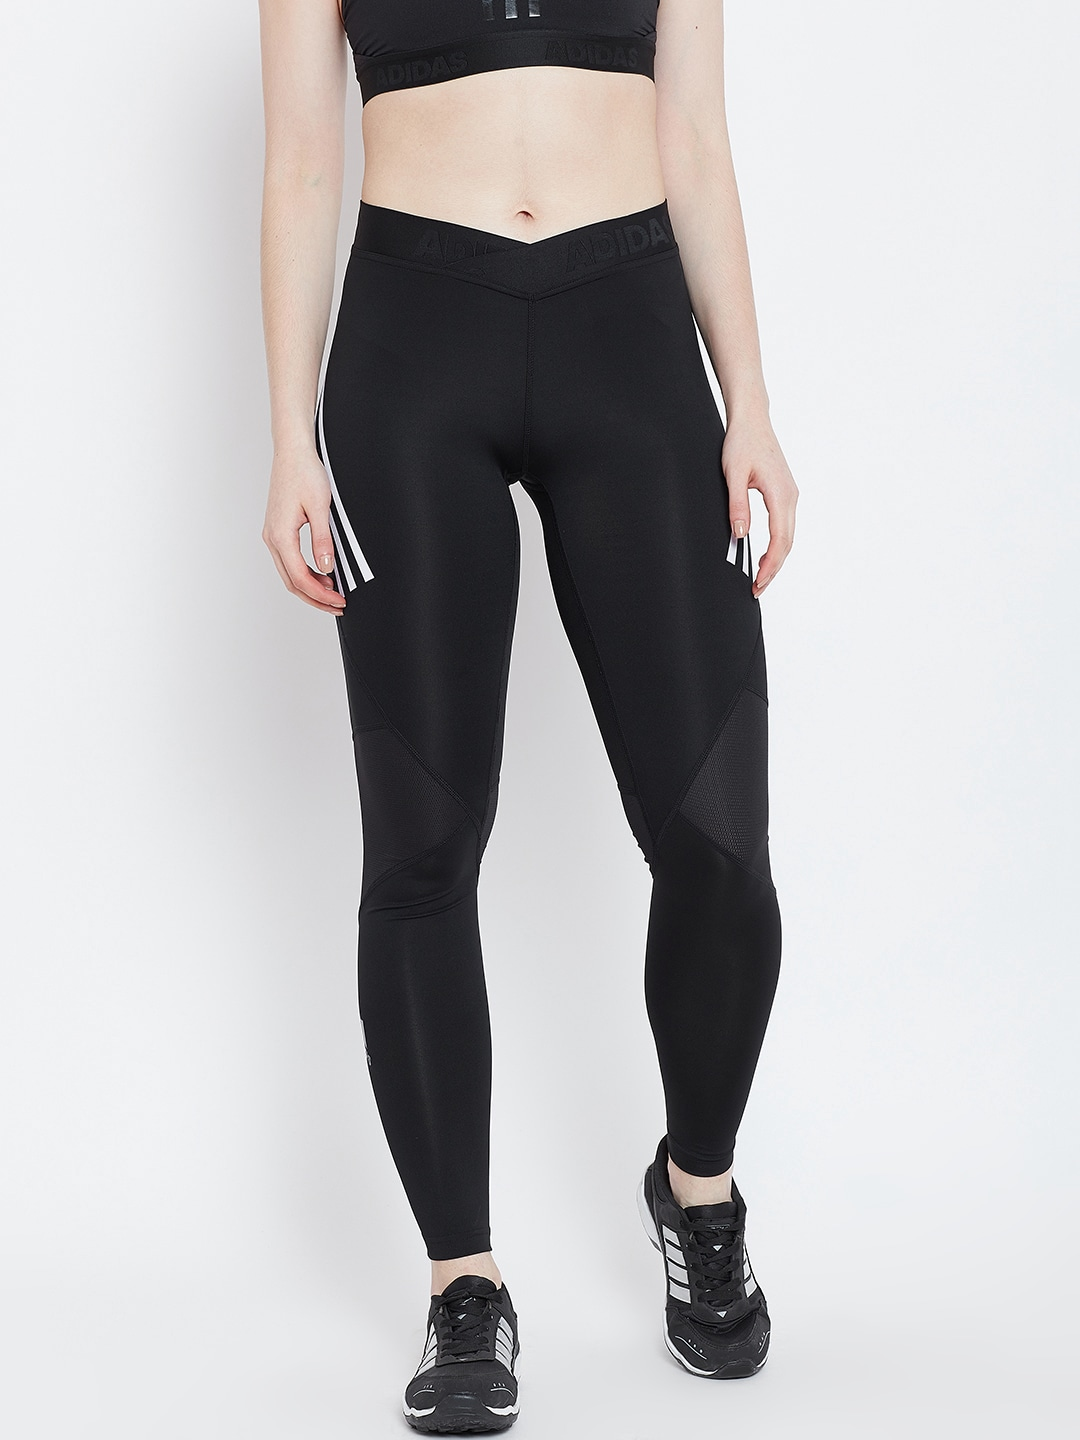 1f4ed78c927d0 Adidas Mickey Tights Leggings - Buy Adidas Mickey Tights Leggings online in  India